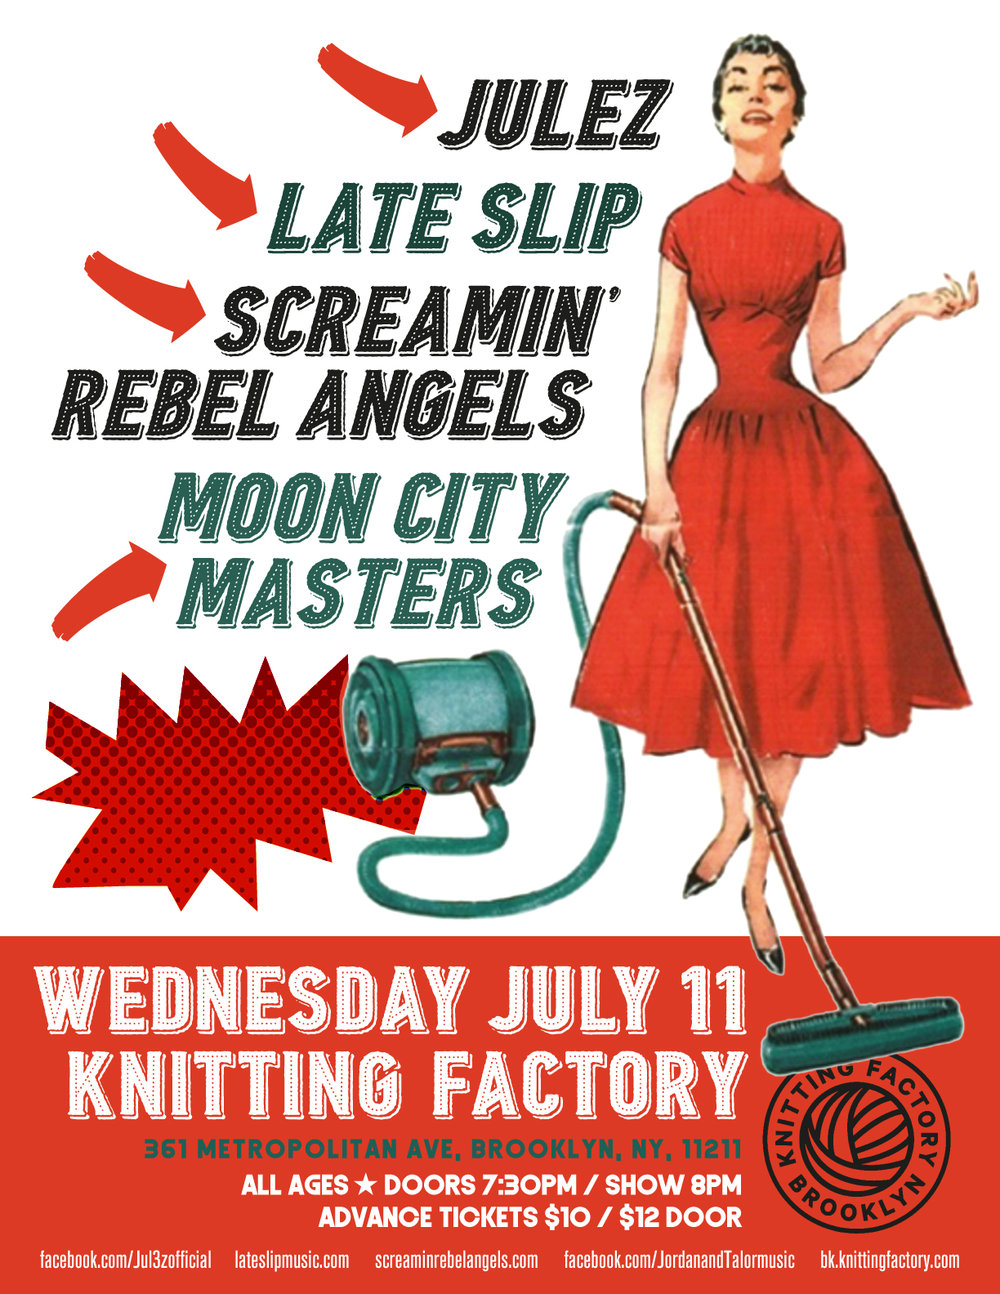 Knitting Factory July 7 Poster.jpg